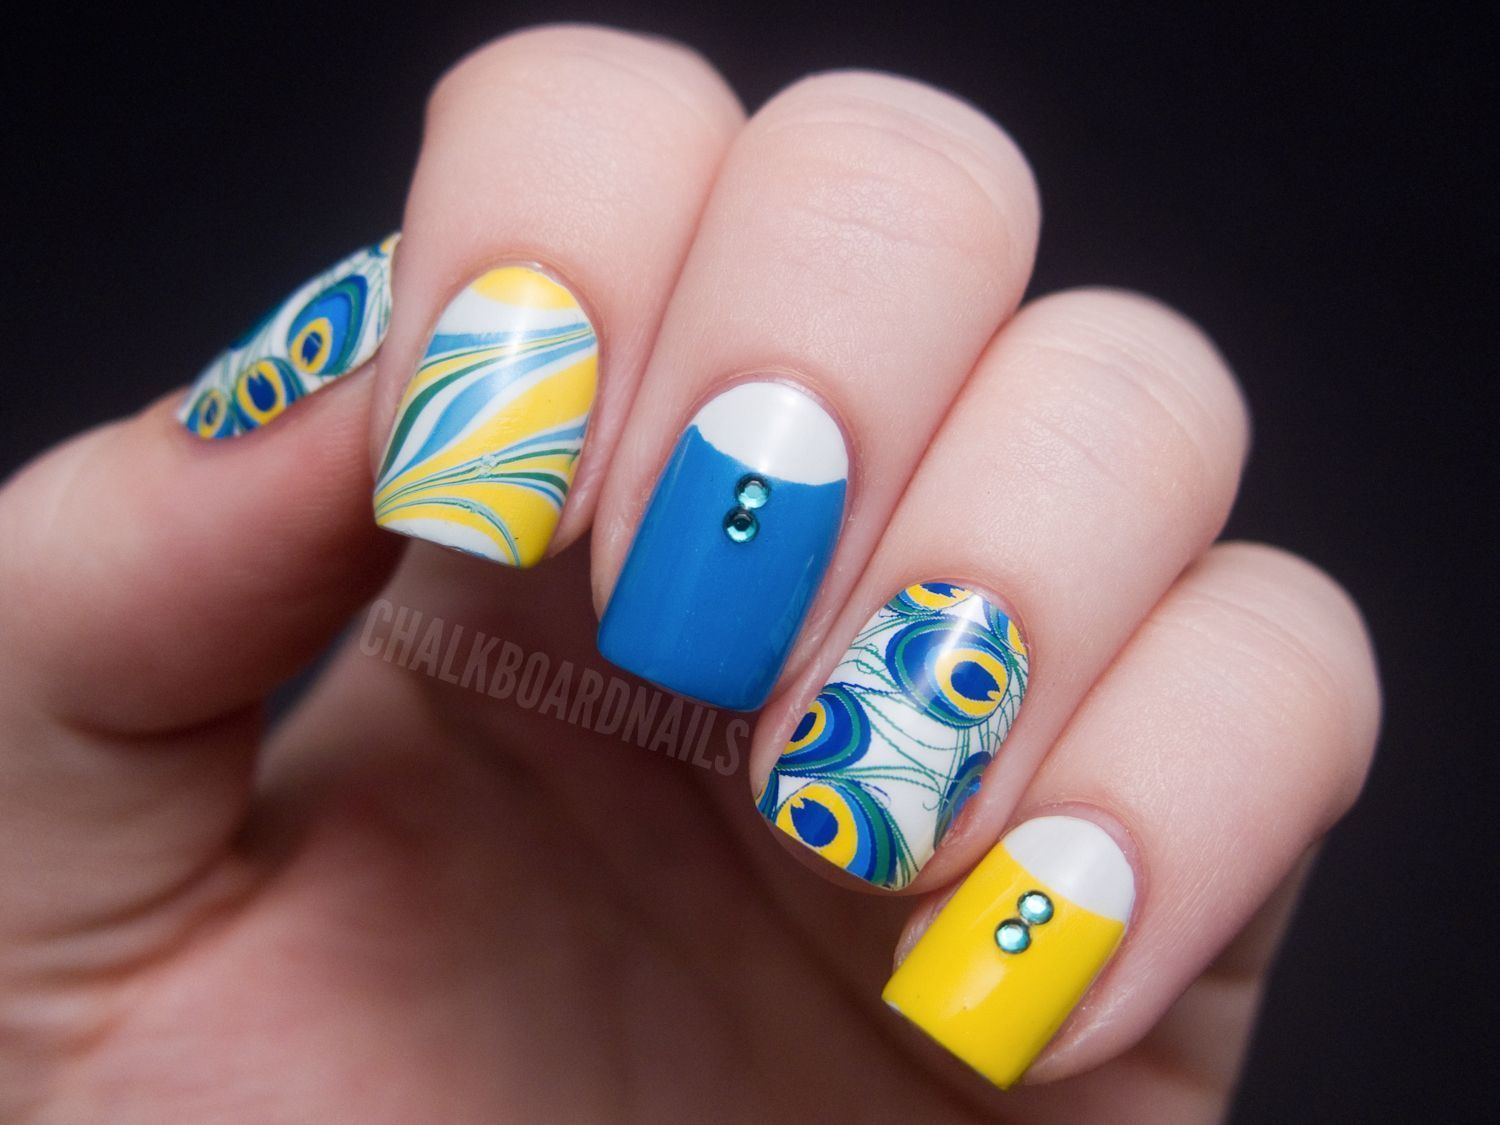 "Foto: Reprodução / <a href=""http://www.chalkboardnails.com/2012/05/make-most-of-your-nail-wraps-peacocking.html"" target=""_blank"">Chalkboard Nails</a>"